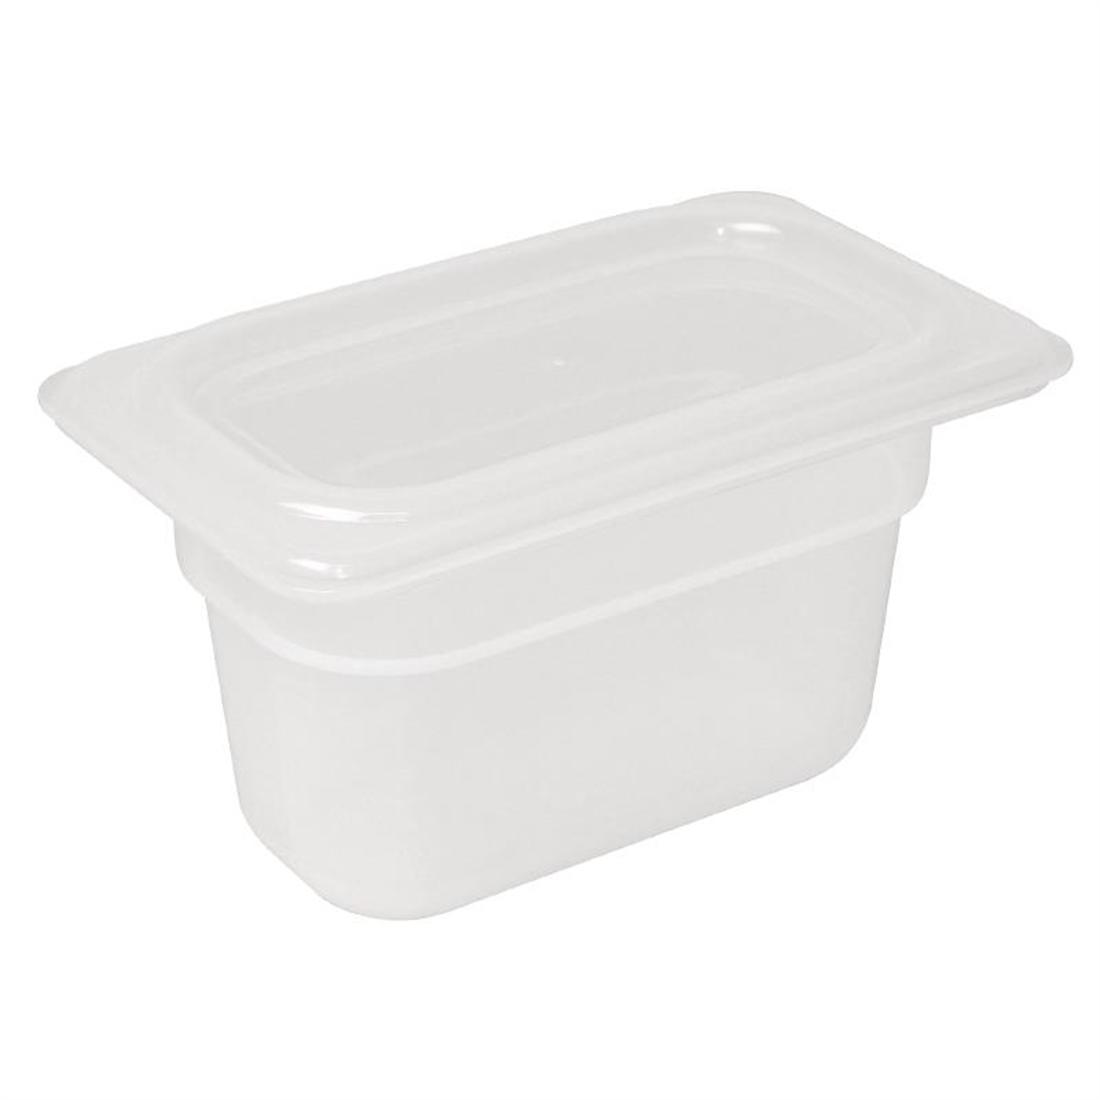 Vogue Polypropylene 1/9 Gastronorm Container with Lid 100mm - Pack of 4 - GJ529